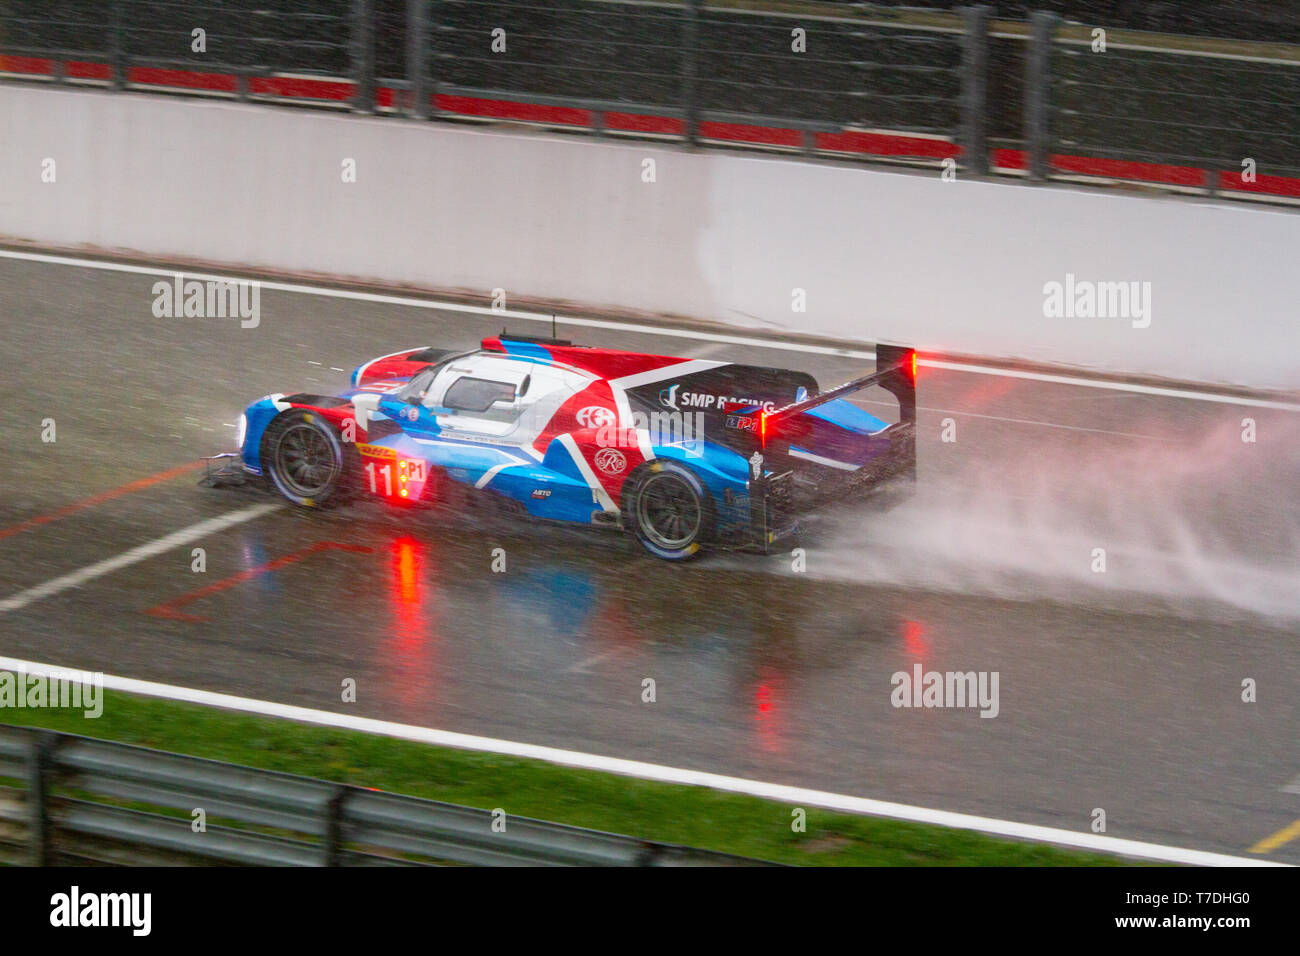 SMP Racing LMP1 kicks up spray on the approach to Eau Rouge. WEC Total 6 Hours of Spa-Francorchamps 2019. This car came 3rd overall. Stock Photo